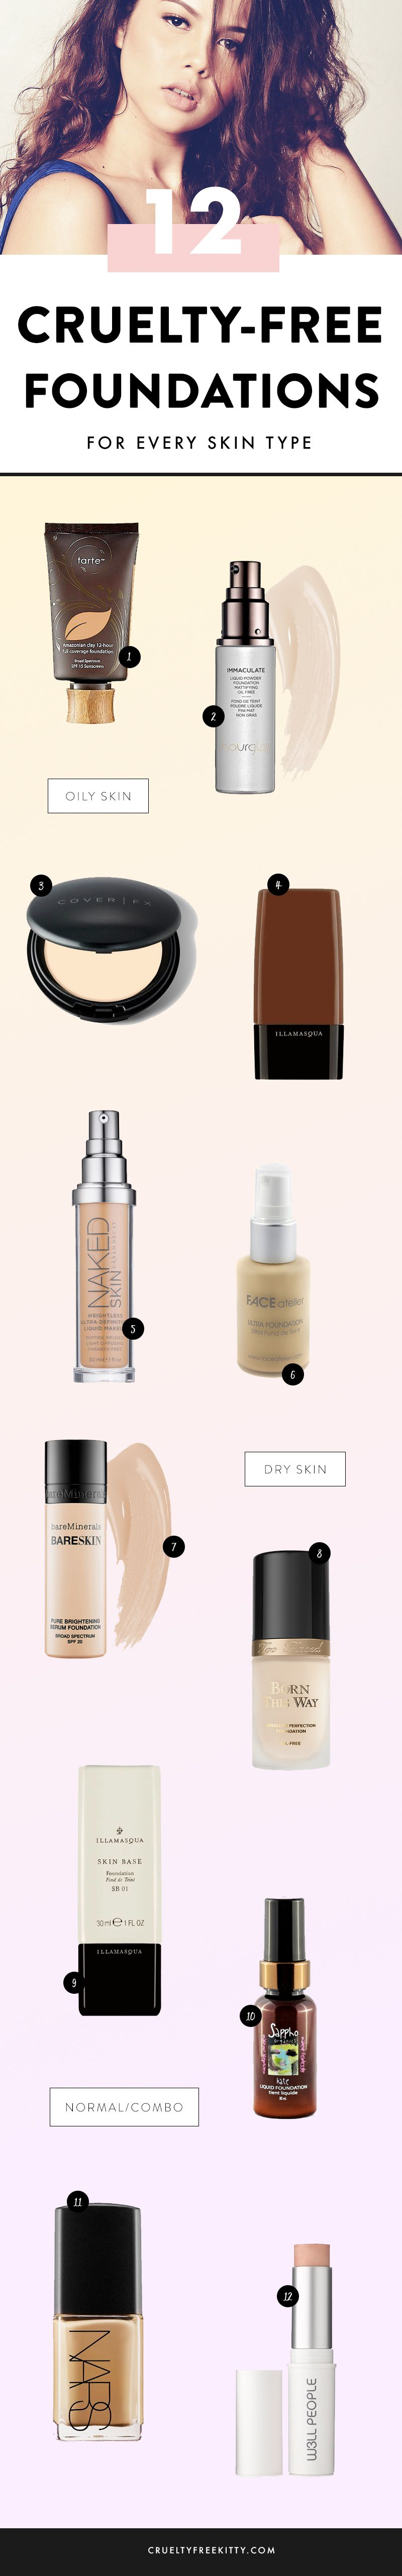 2020 17 Best Cruelty Free Foundations From Drugstore To High End Cruelty Free Beauty Brands Cruelty Free Makeup Brands Cruelty Free Cosmetics